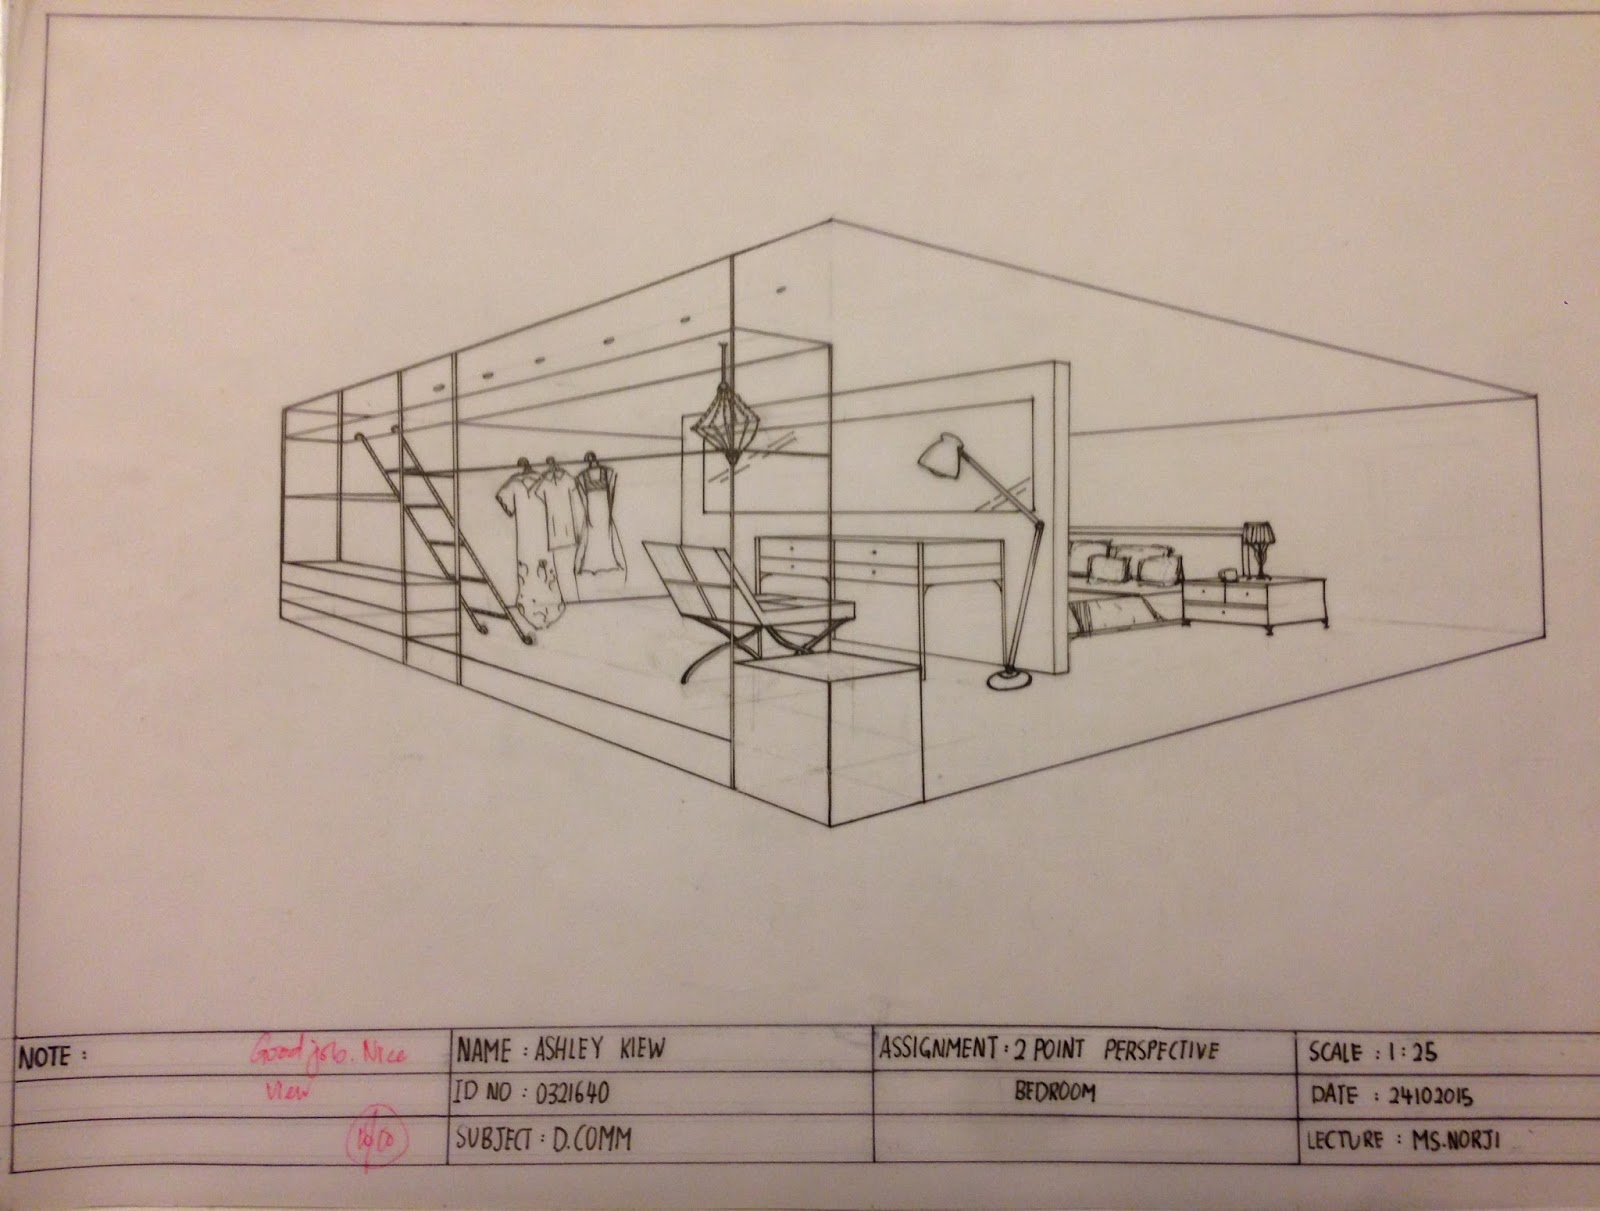 Bedroom drawing perspective - Two Point Perspective Bedroom Interior Architecture Sem 1 Progressive Work